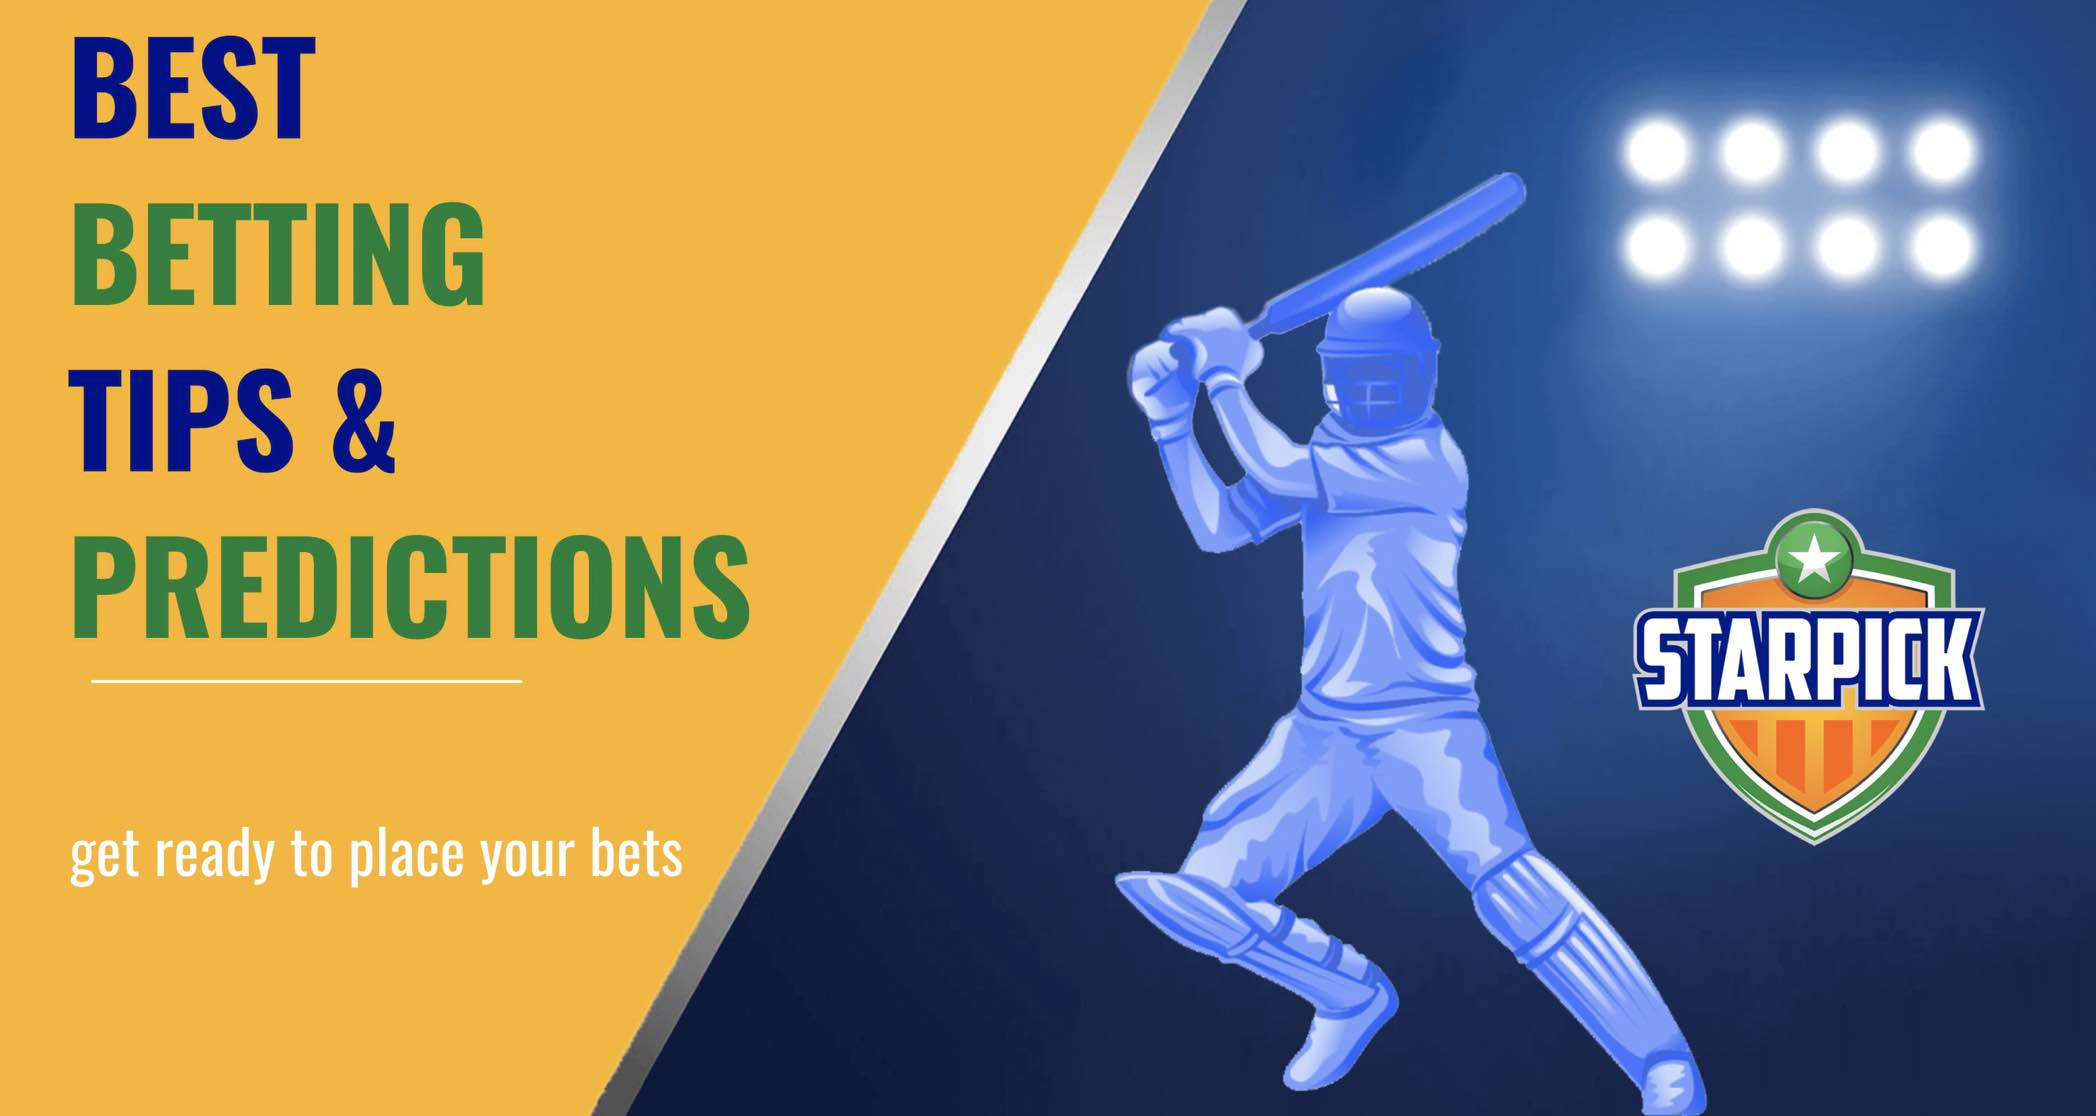 Best Betting tips and predictions